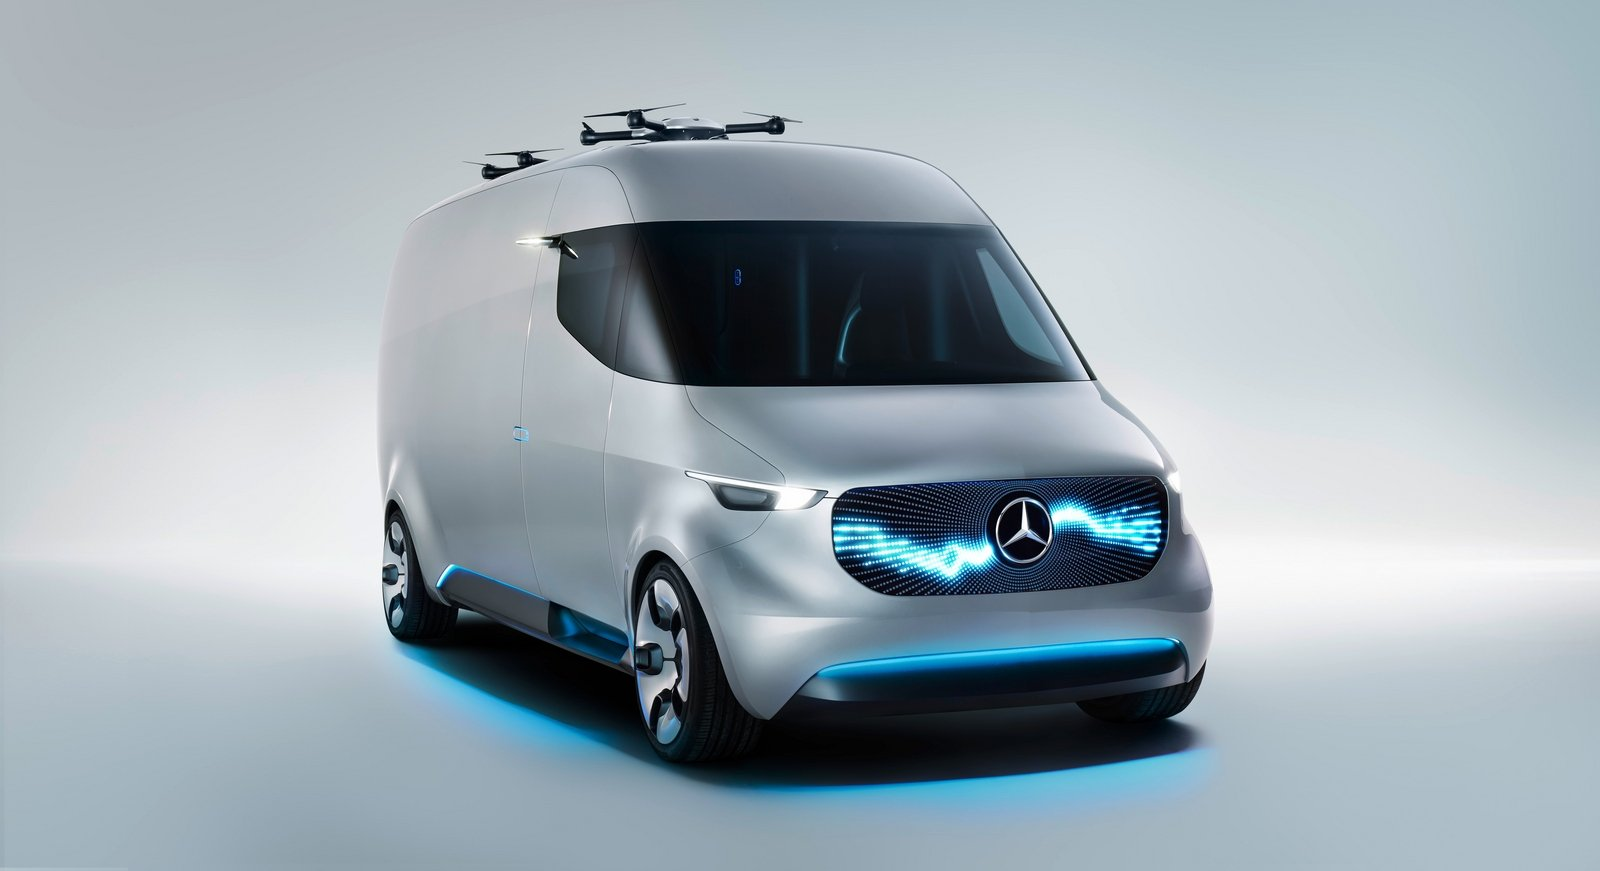 Vanguard of Mercedes future